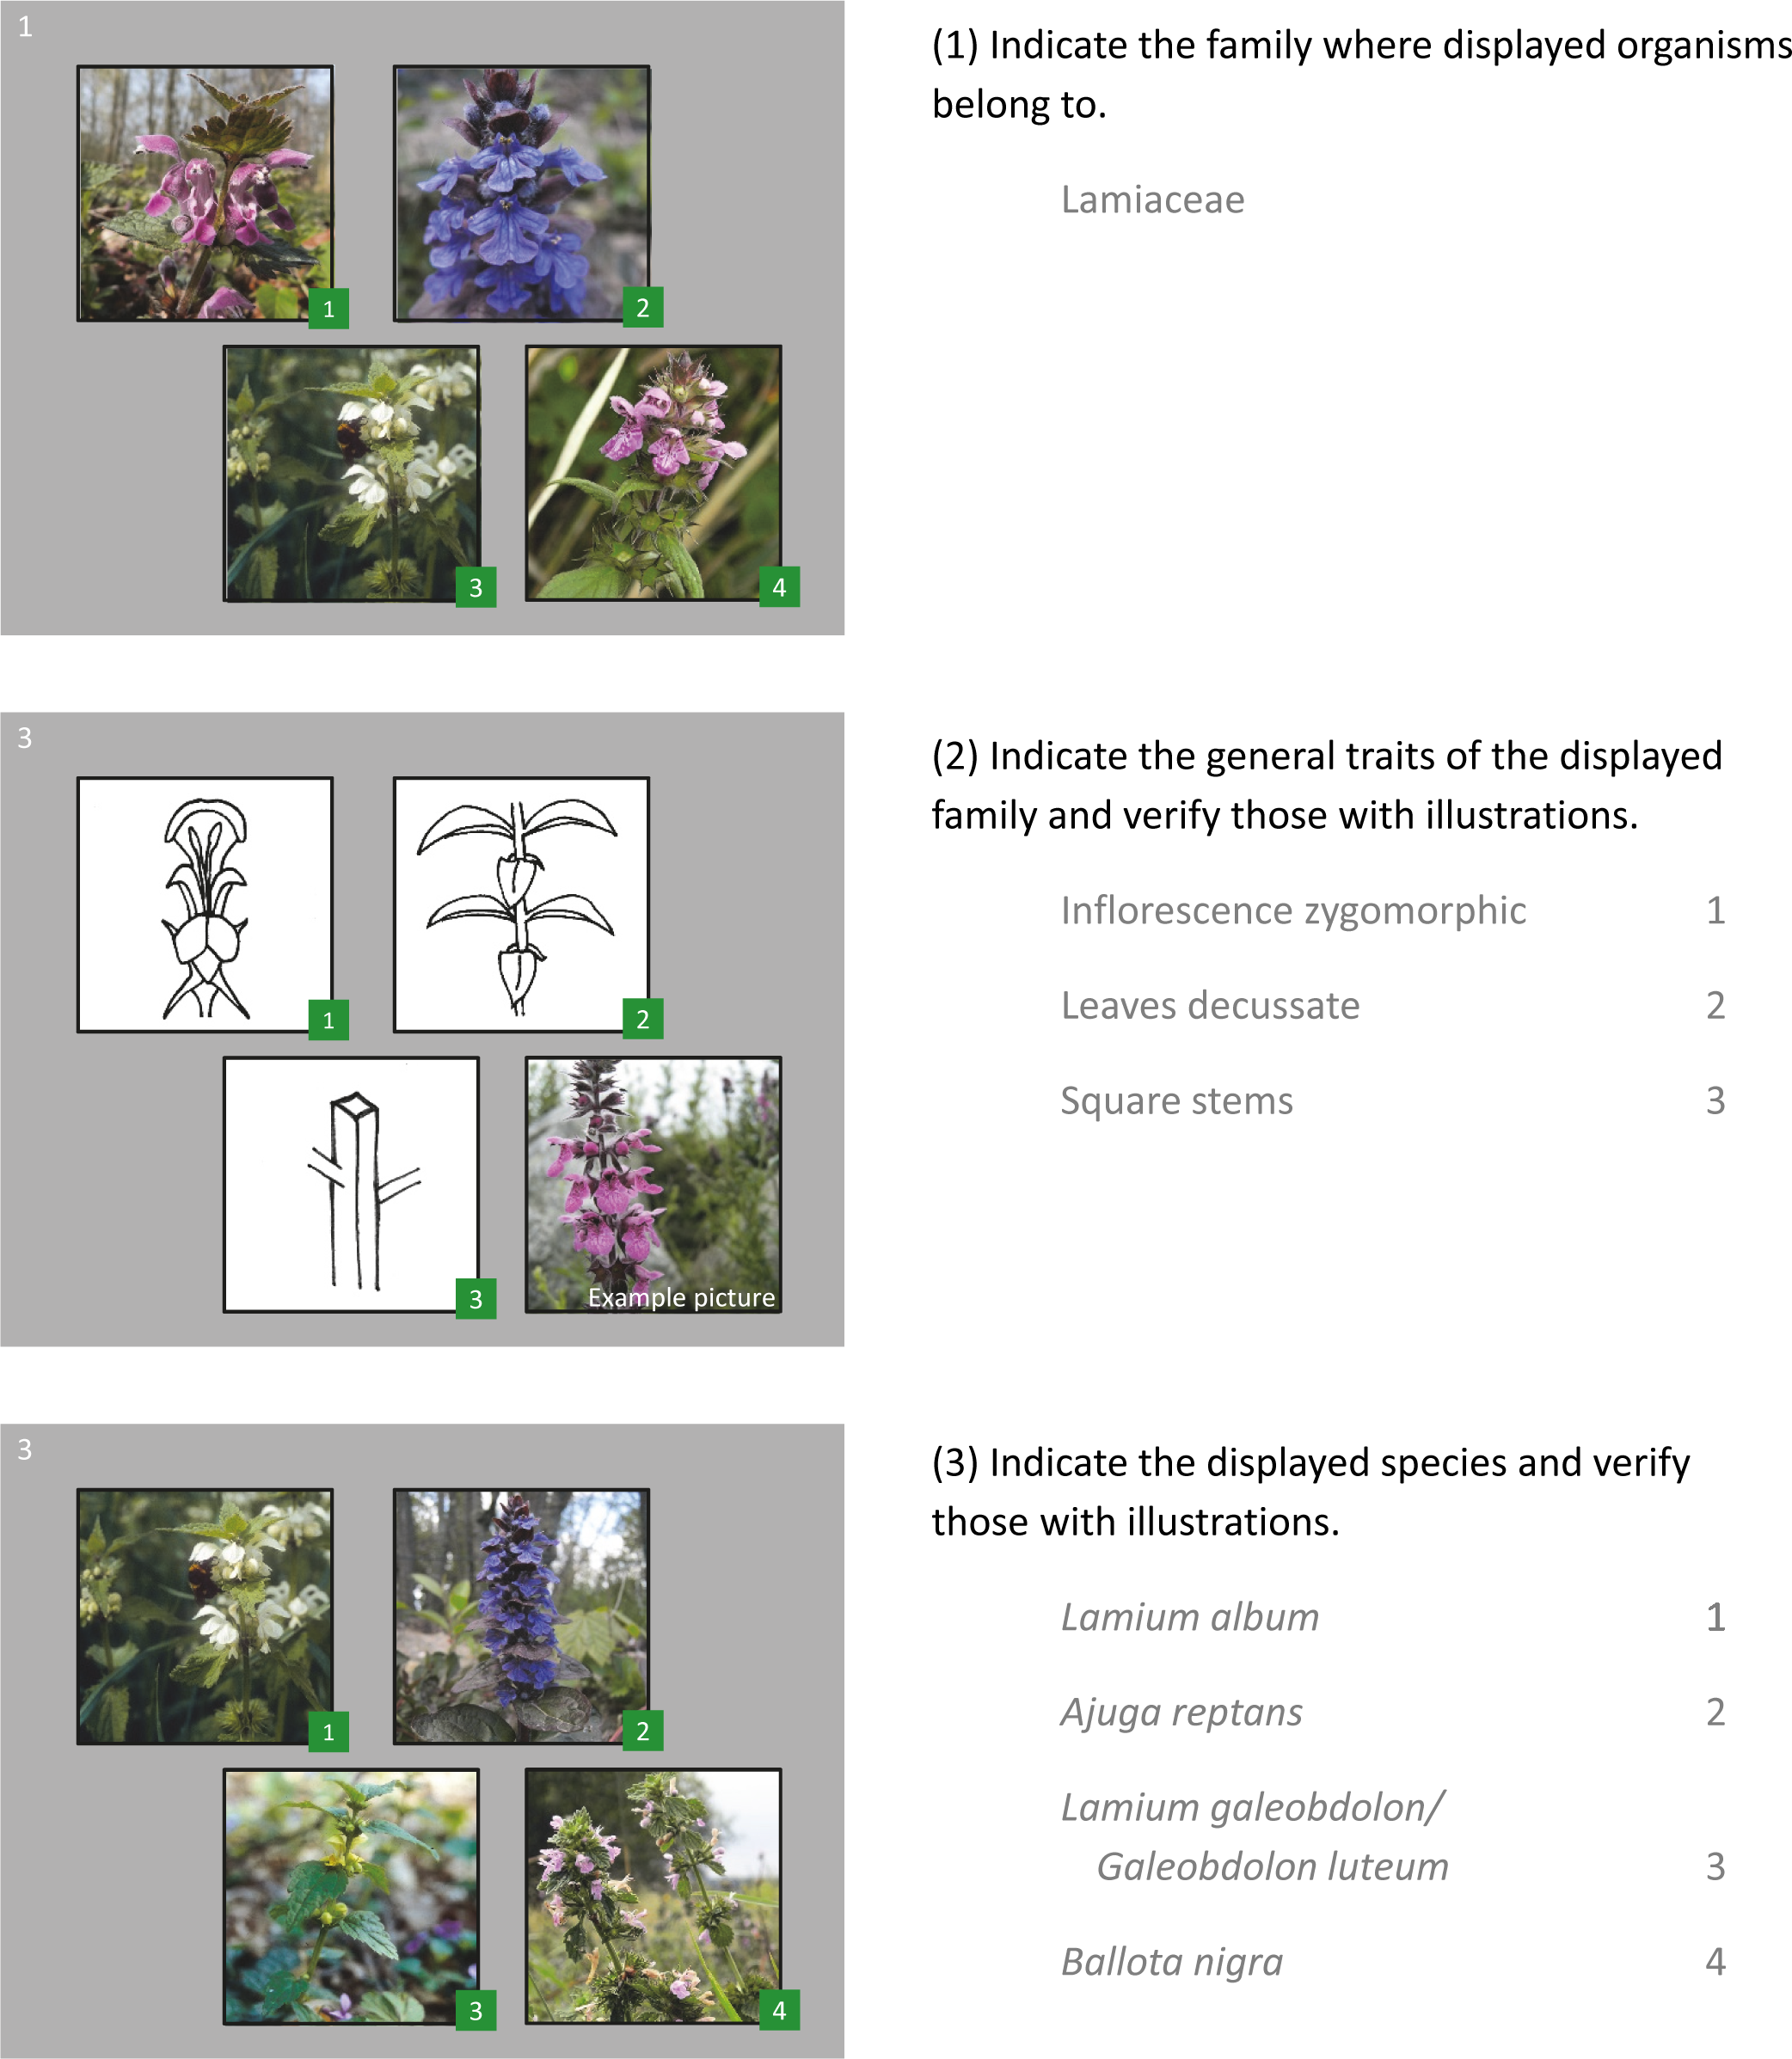 Just a small bunch of flowers: the botanical knowledge of